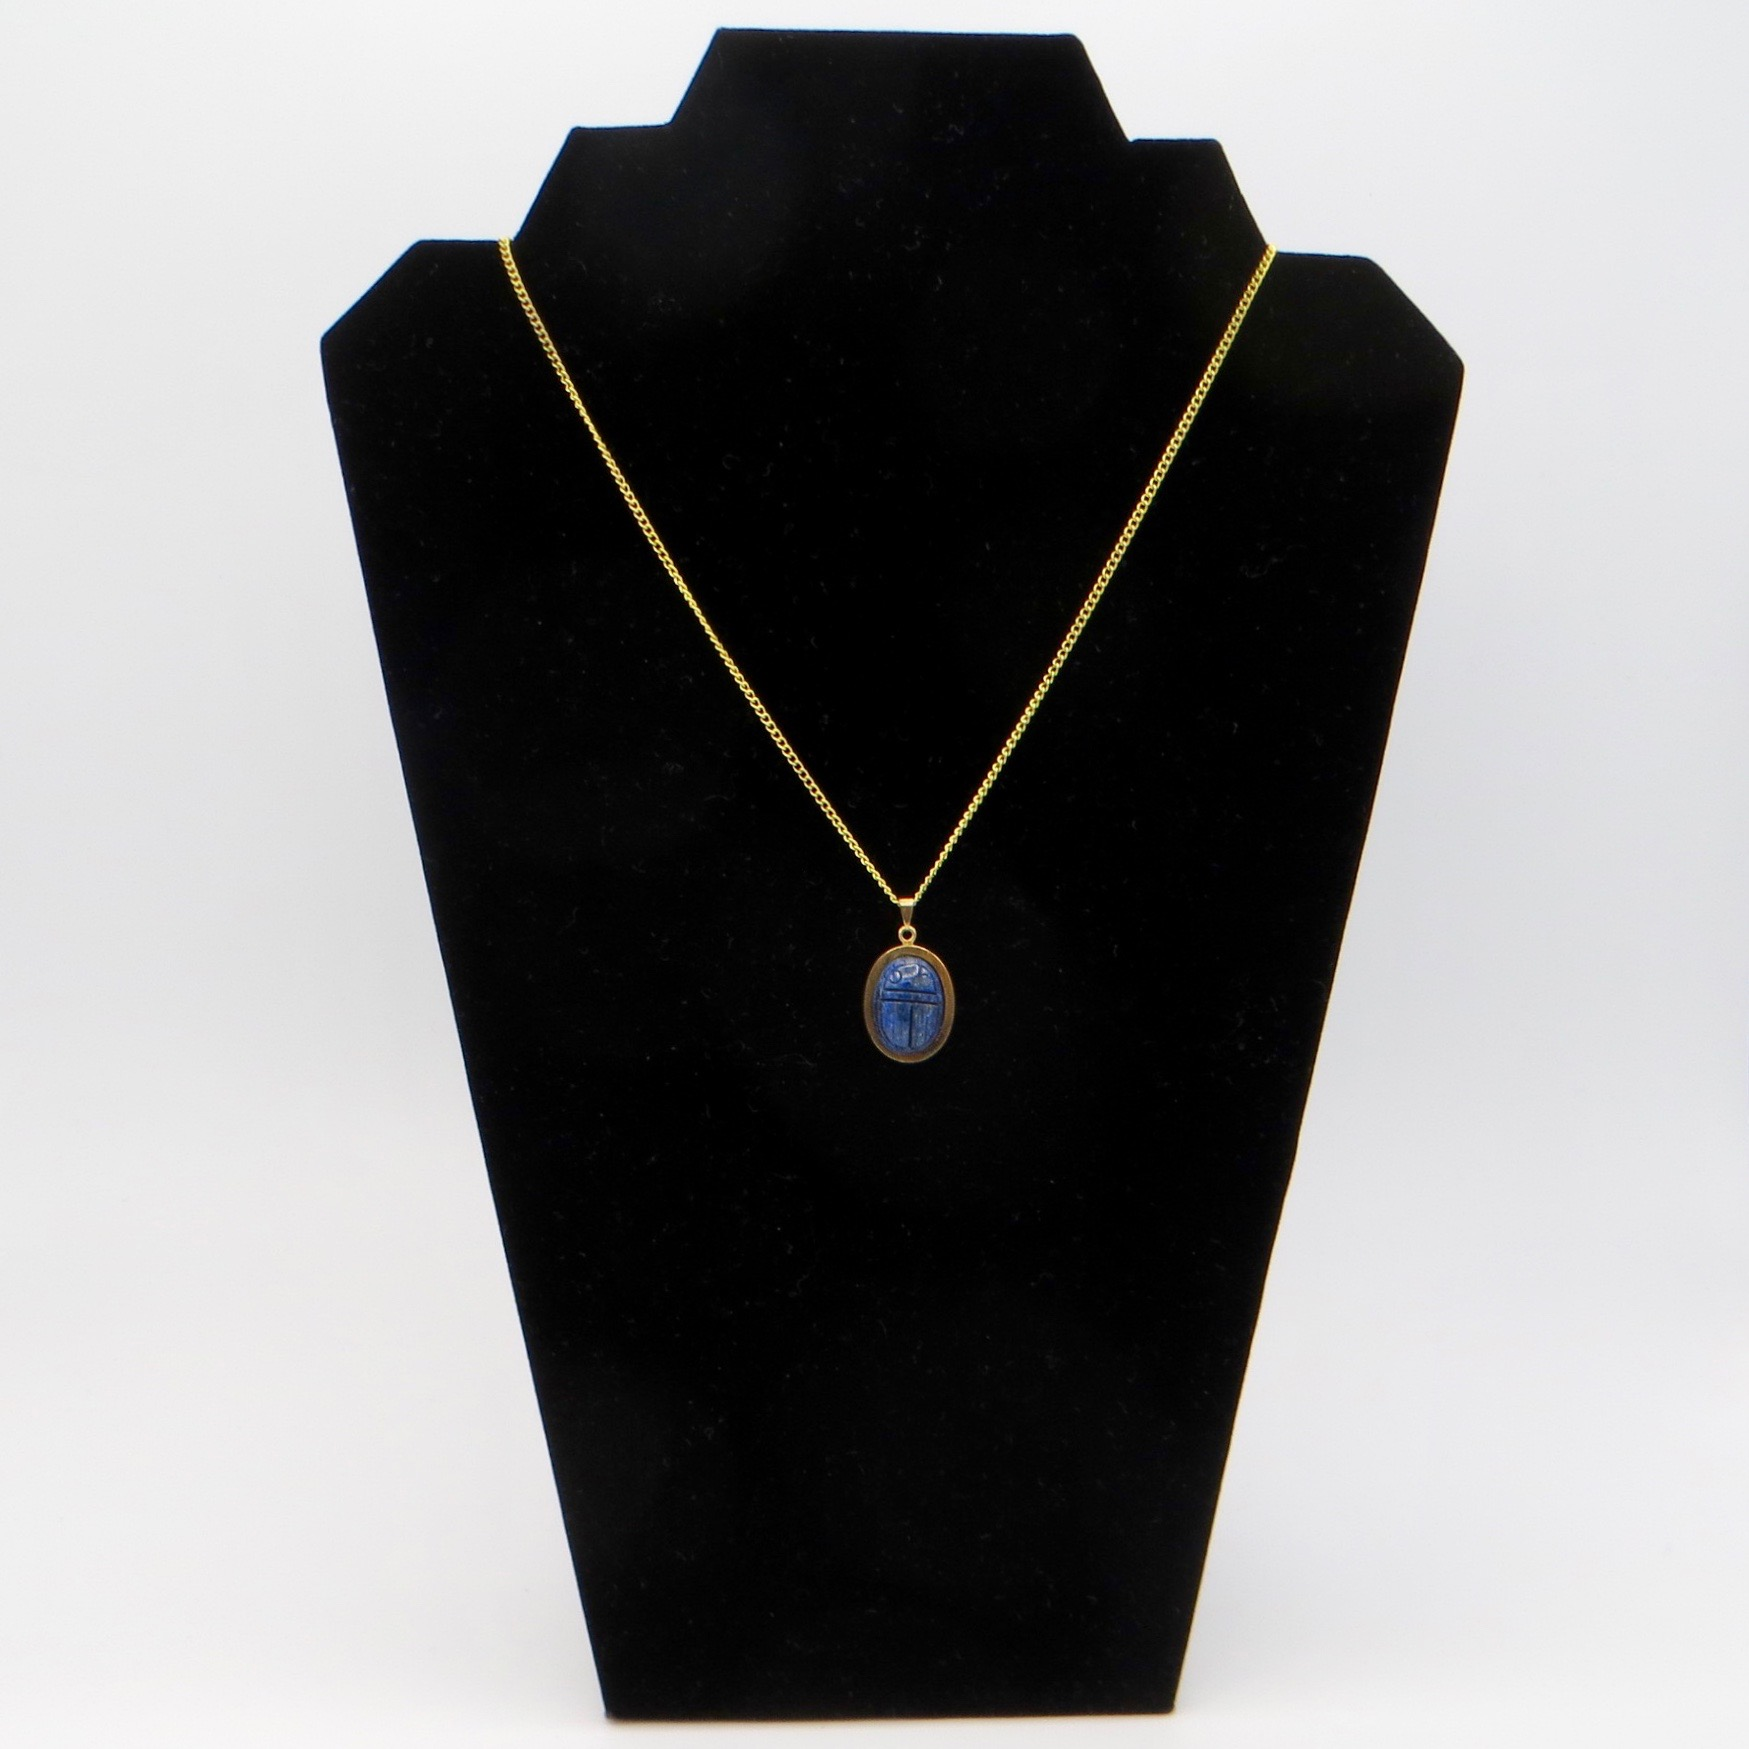 1950s Gold-Filled Carved Sodalite Scarab Necklace